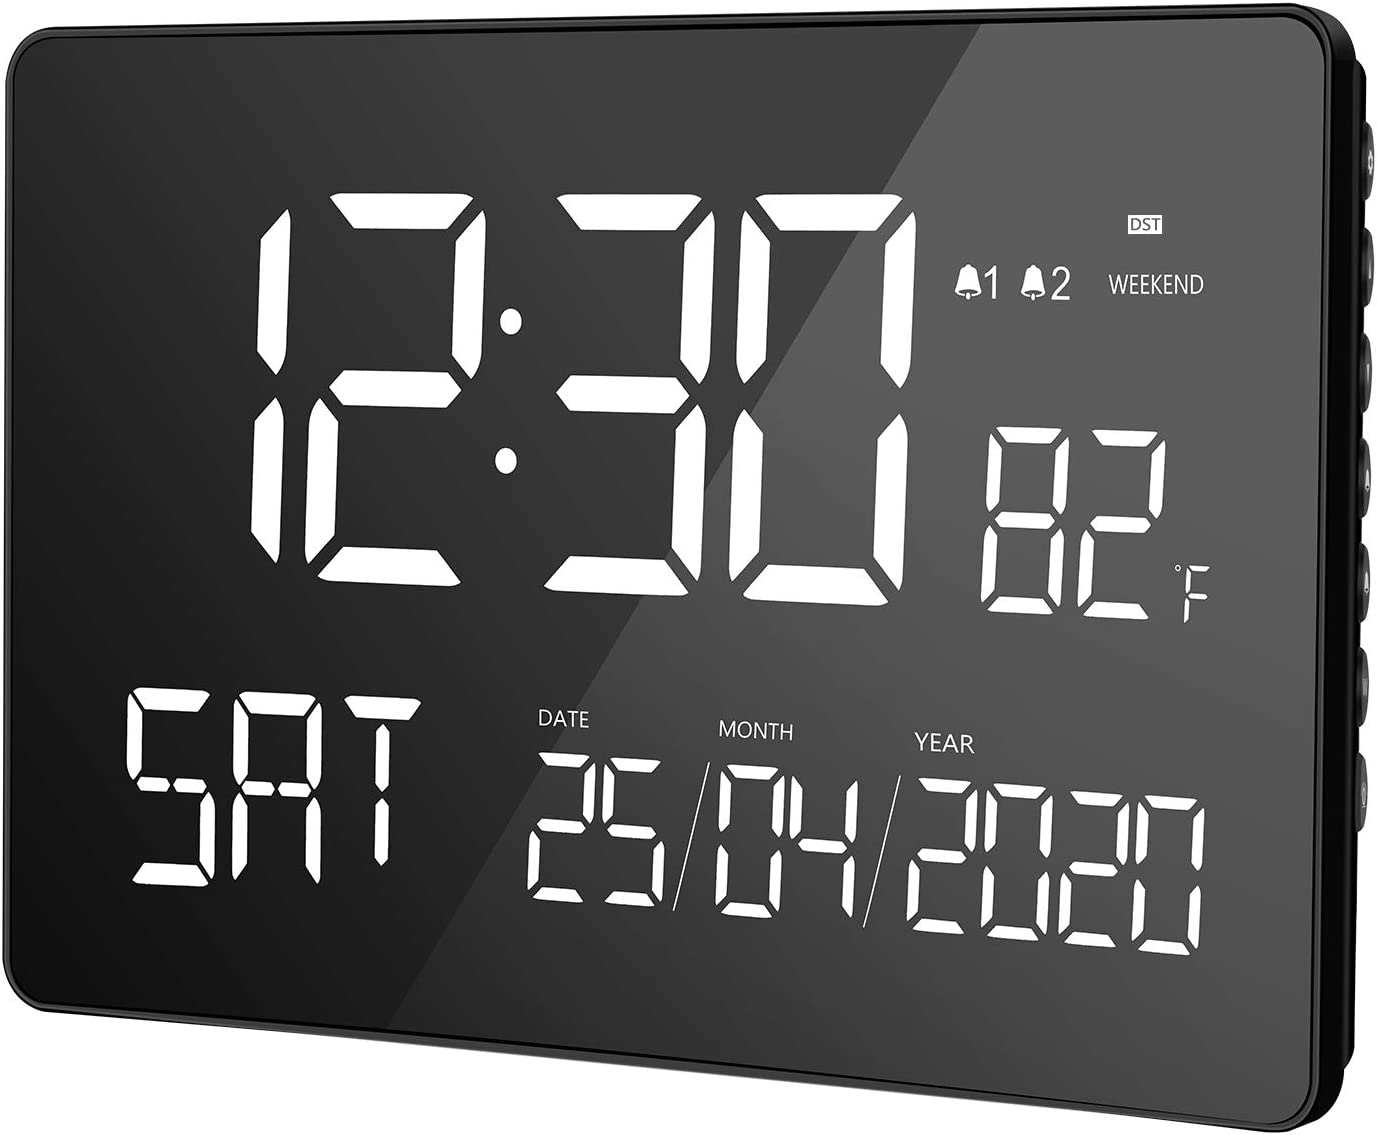 """LIORQUE Digital Alarm Clock, 11.2"""" Large Curved Dimmable LED Screen, Digital Day Clock with Dual Alarms, Calendar, Weekend Mode, Indoor Temperature, 12/24H, DST for Senior"""